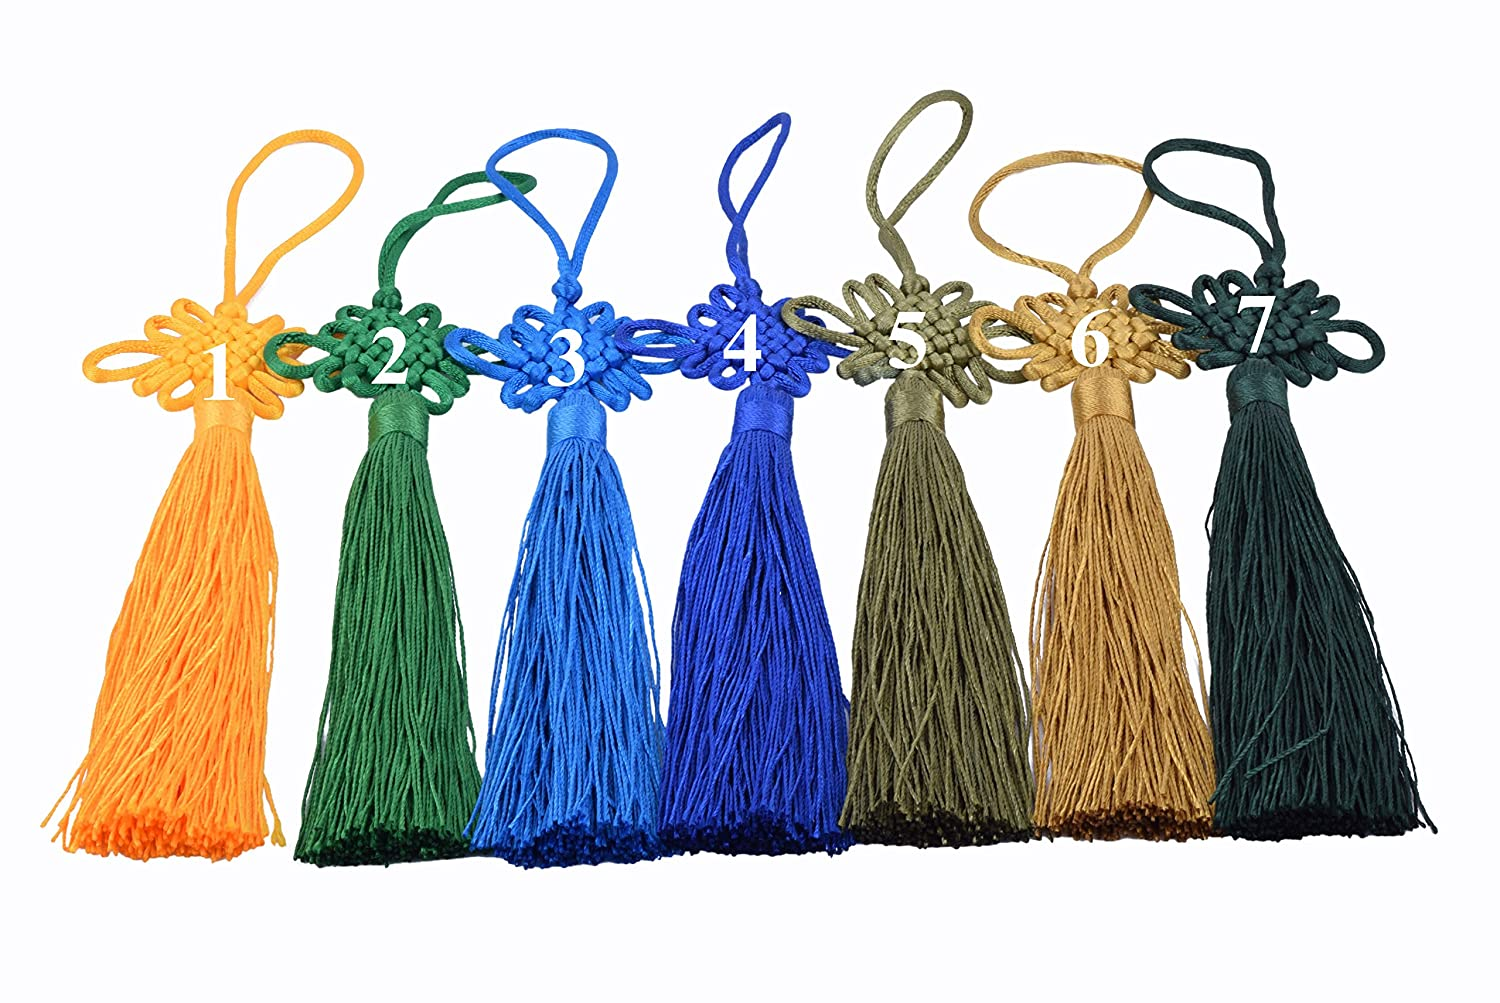 Tassels with Satin Silk Made Chinese Knots 6.4 Red KONMAY 10pcs Red Handmade Silky Large Size